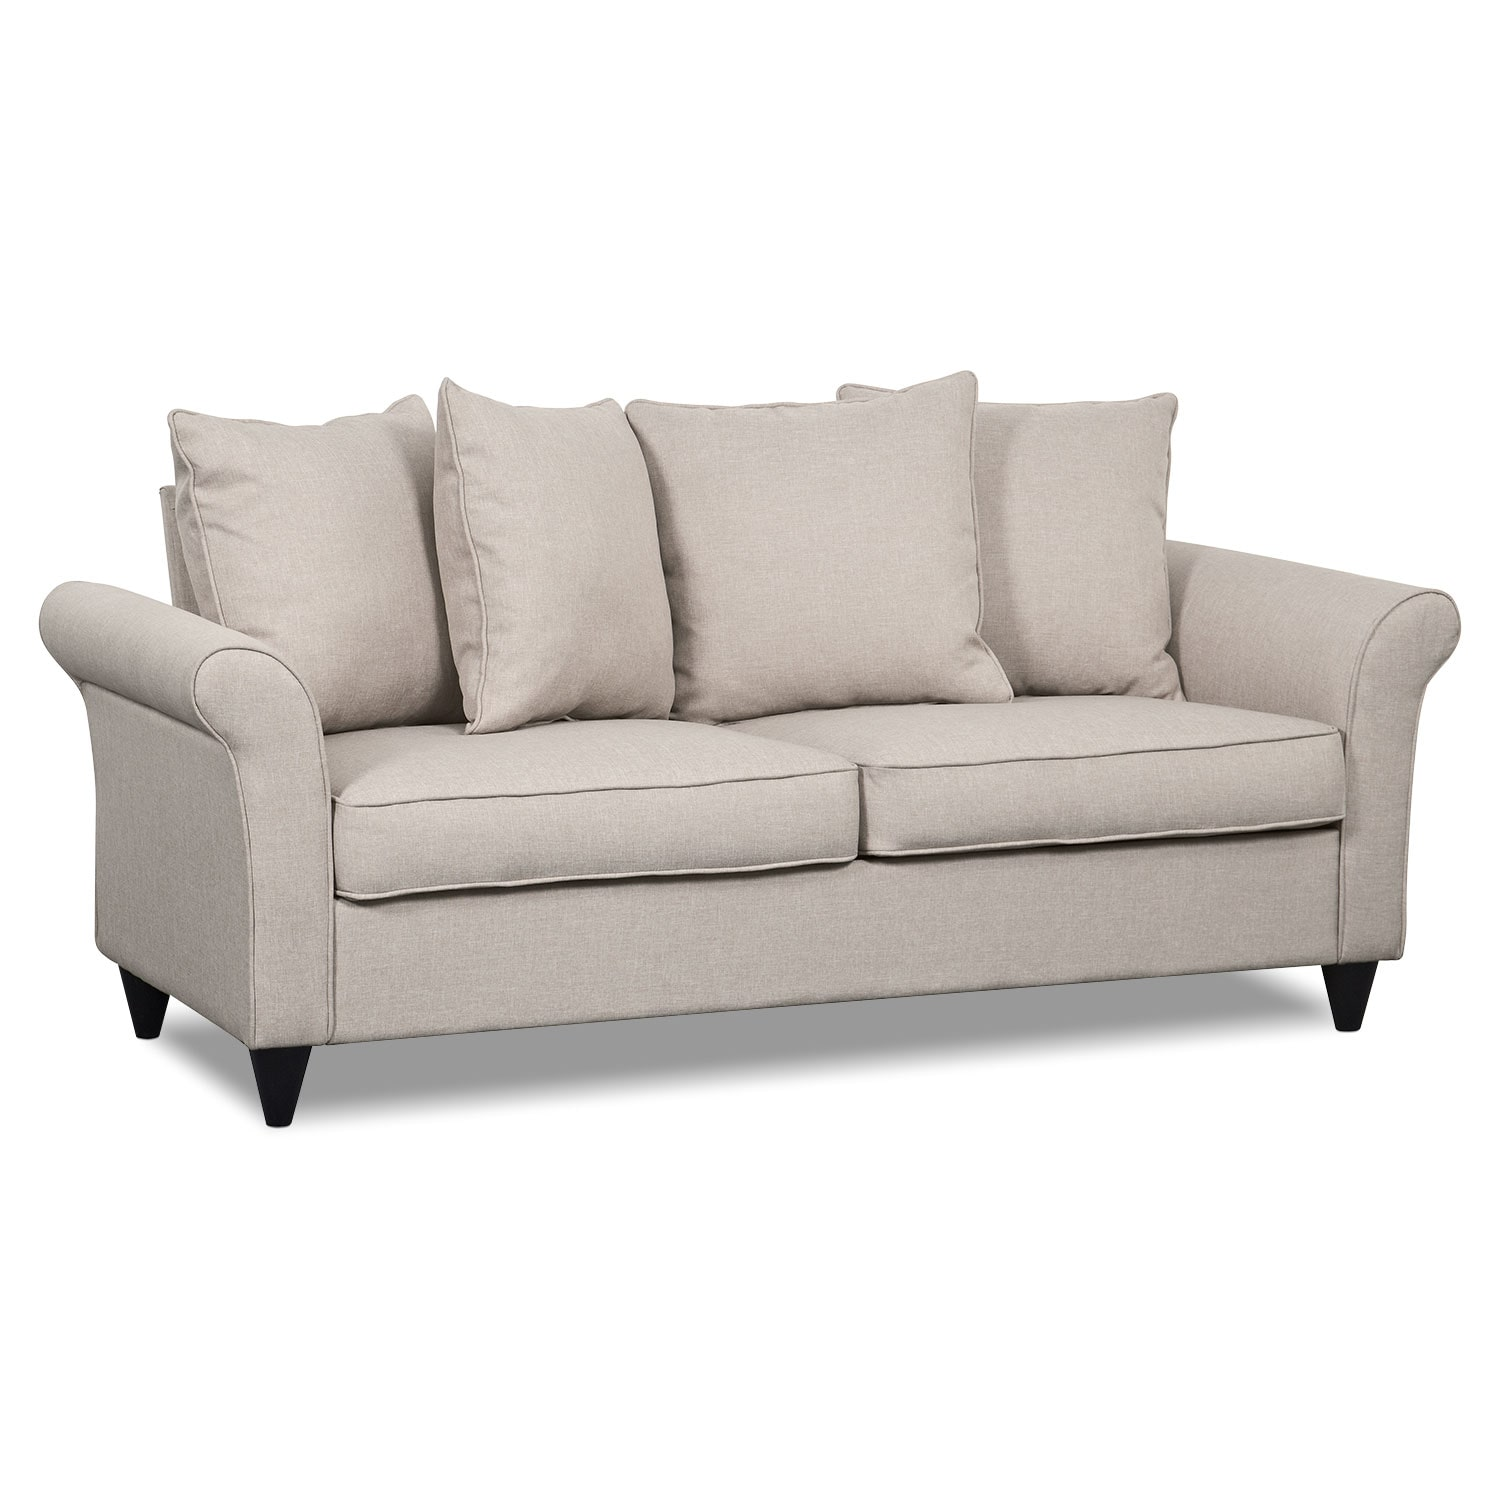 Living Room Furniture - Denton Sofa - Beige